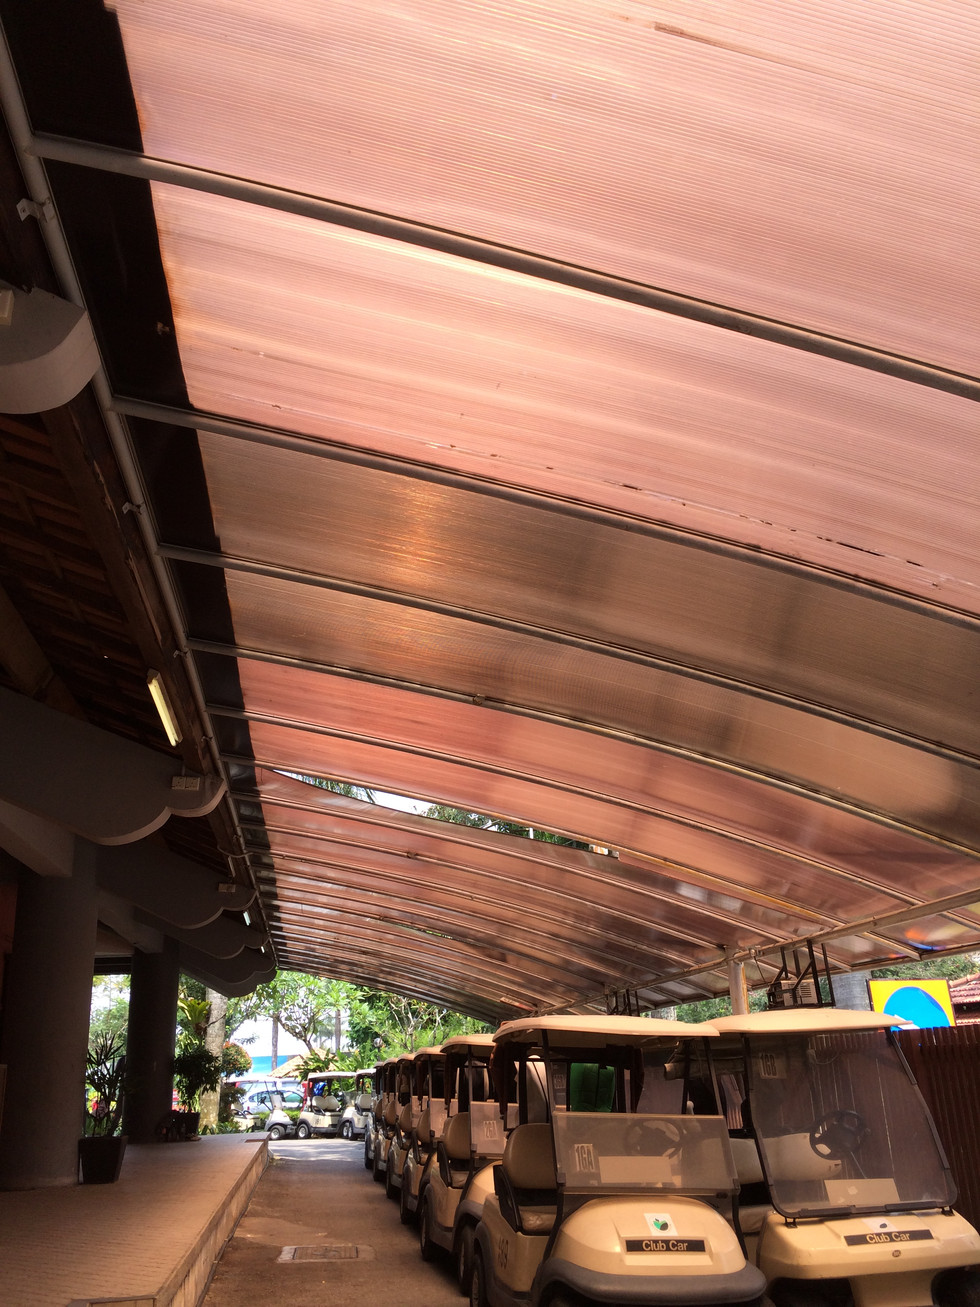 Uncoated Polycarbonate + Poor Workmanship in a Prestigious Golf Club Awning